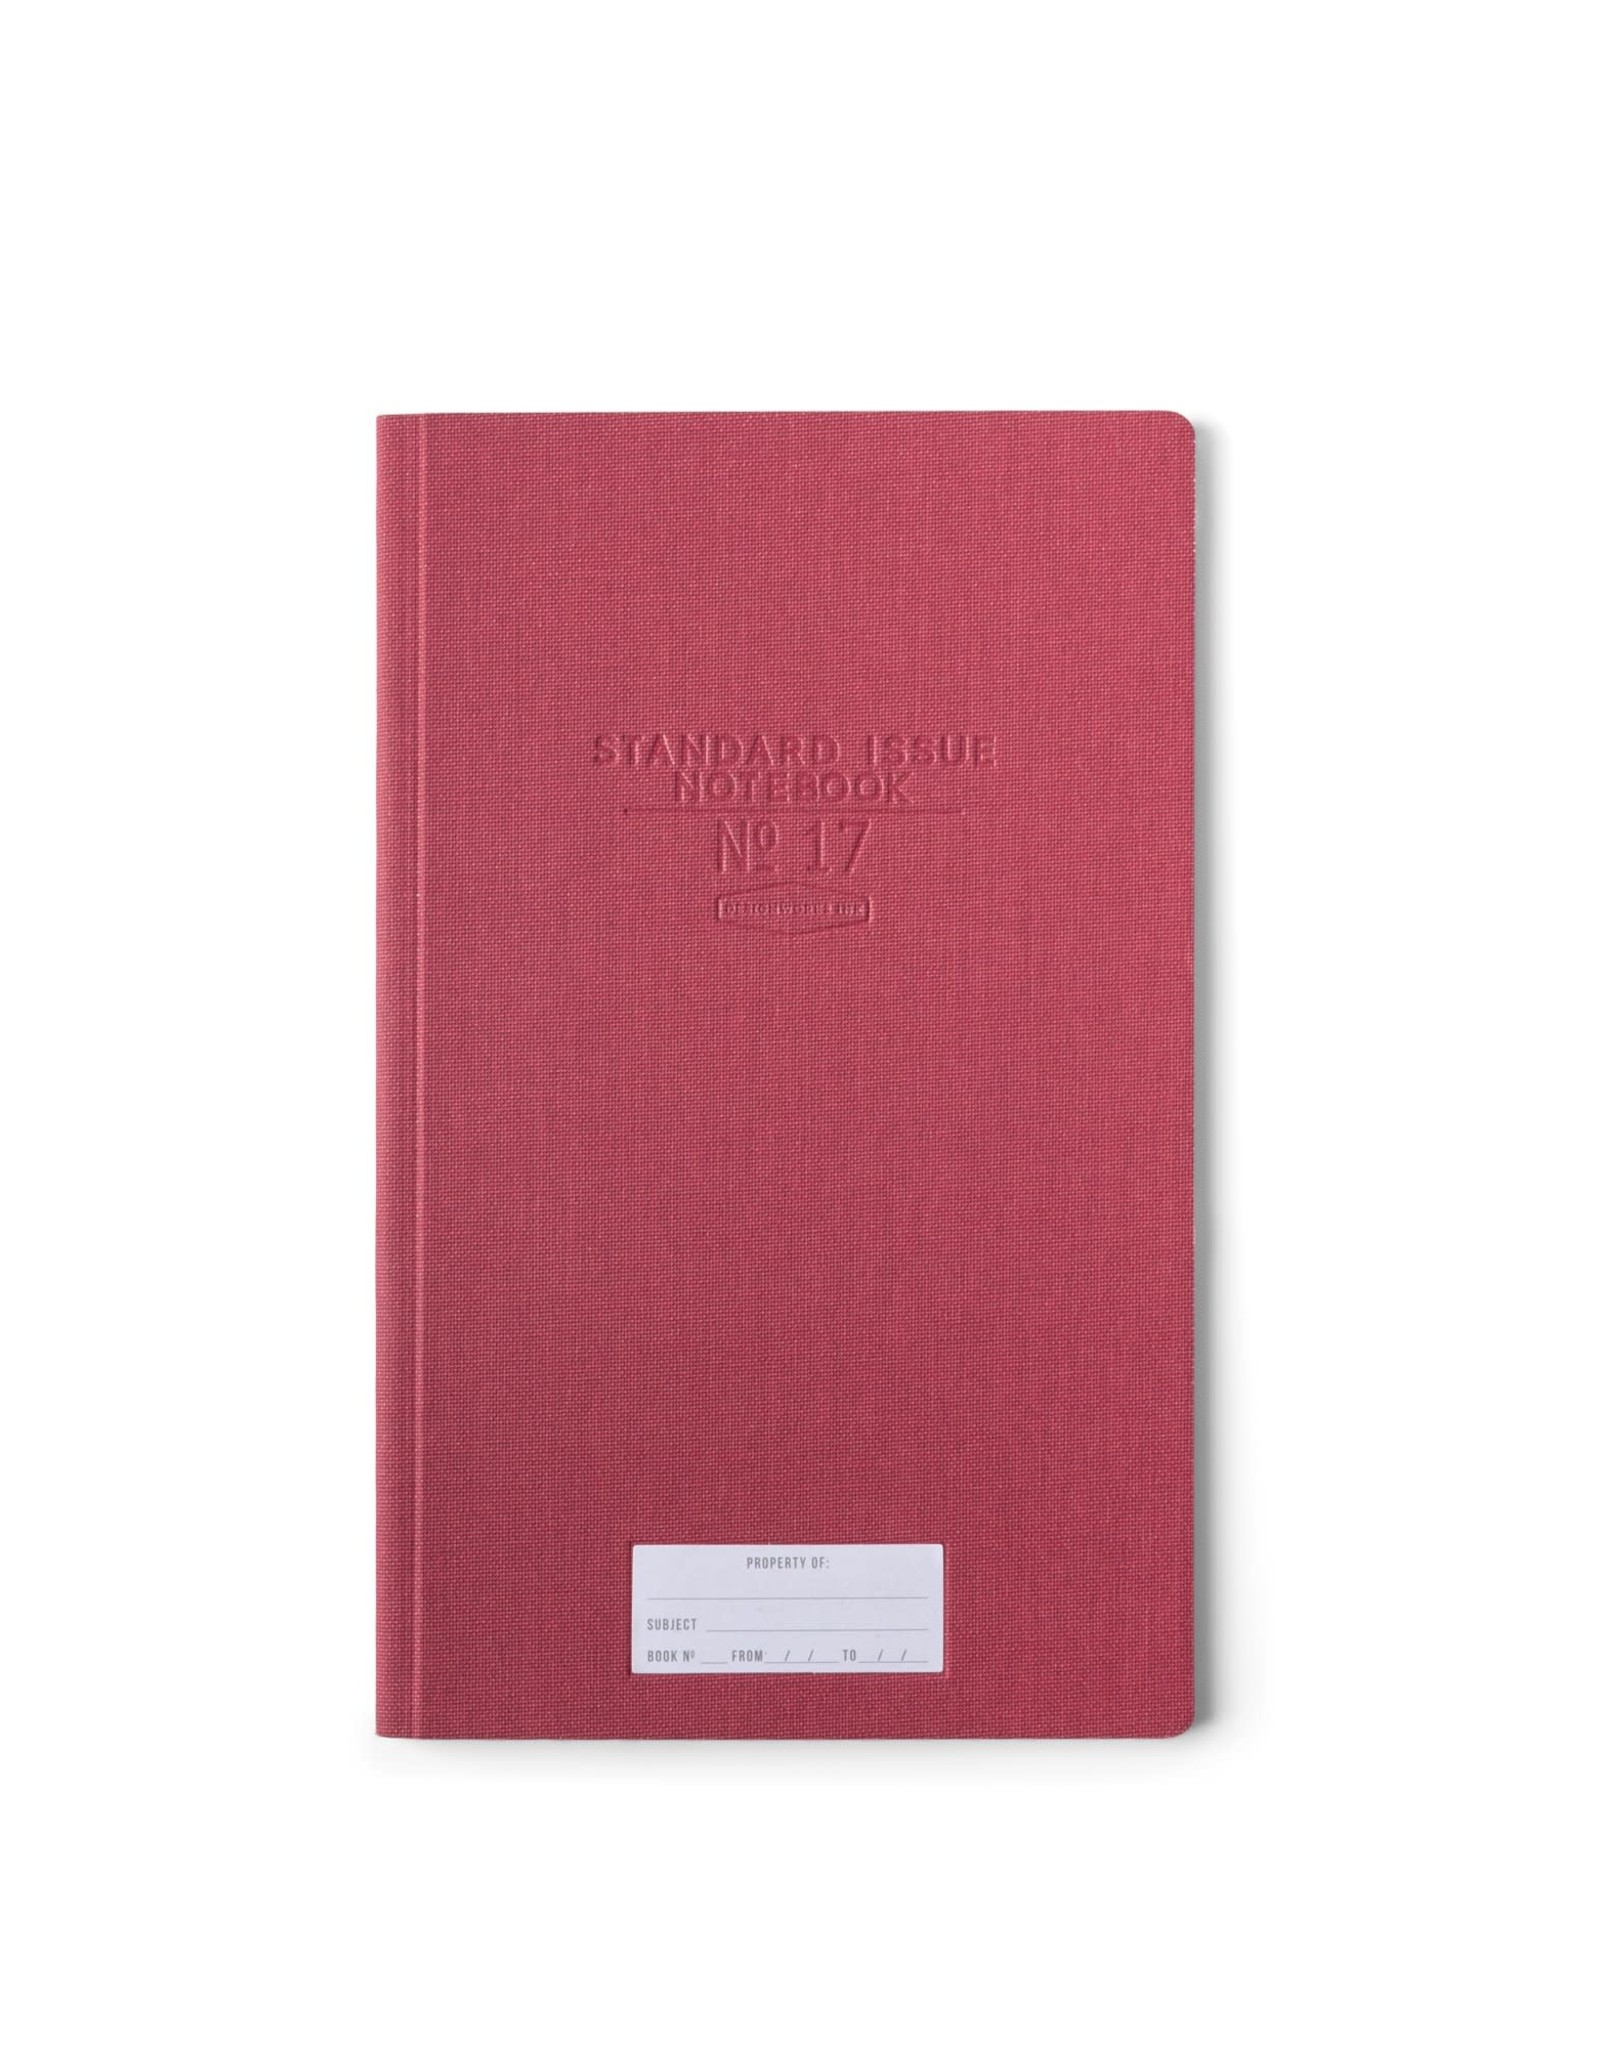 Designworks Ink Standard Issue Notebook No. 17